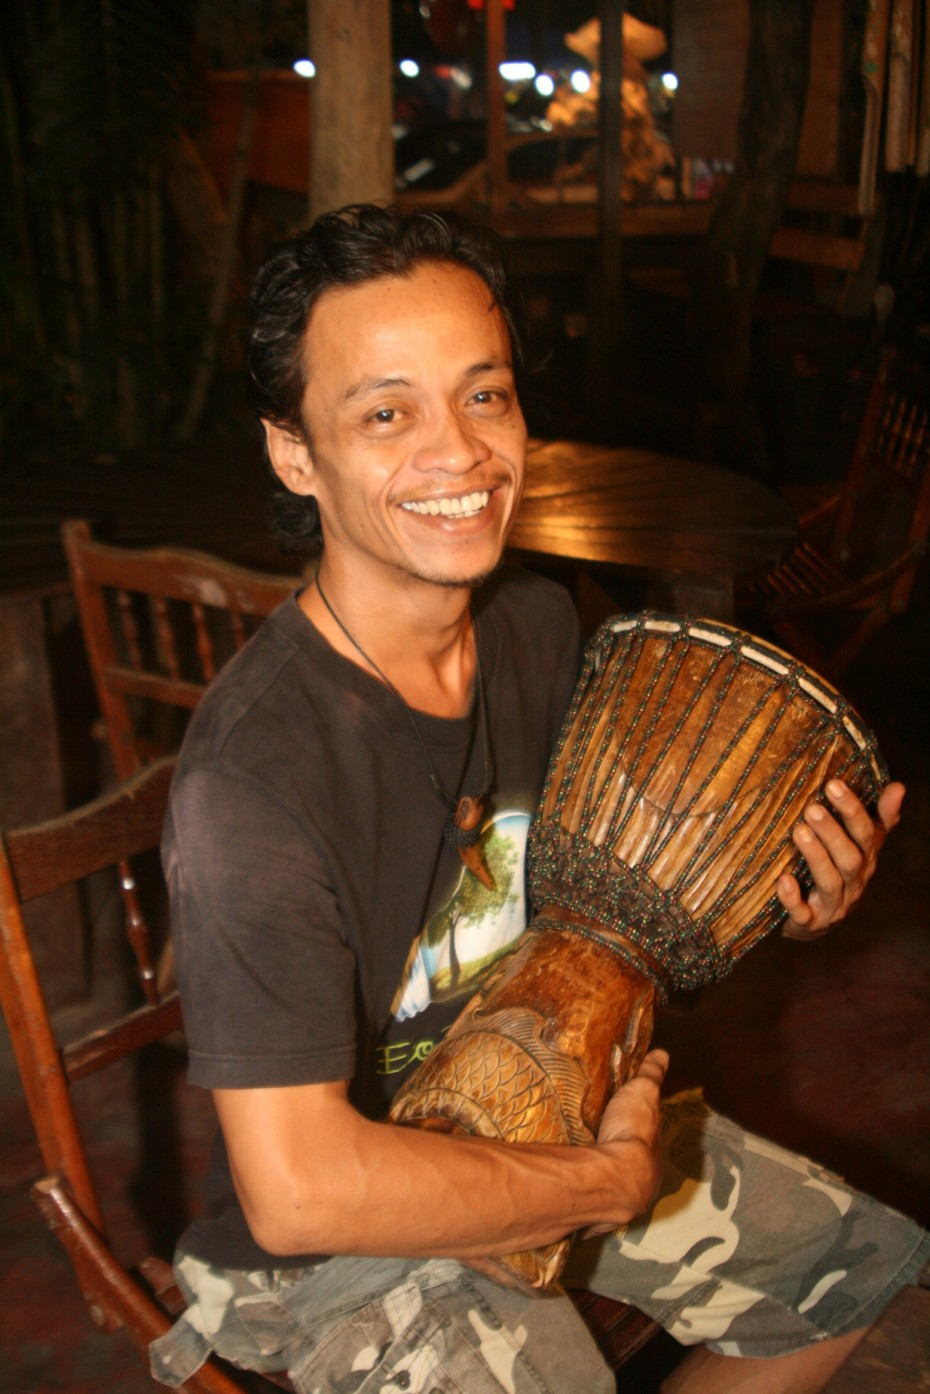 Syahril Azwan Salleh plays the djembe (pictured) with Cubit-Cubit Rindu whenever he has time to spare.